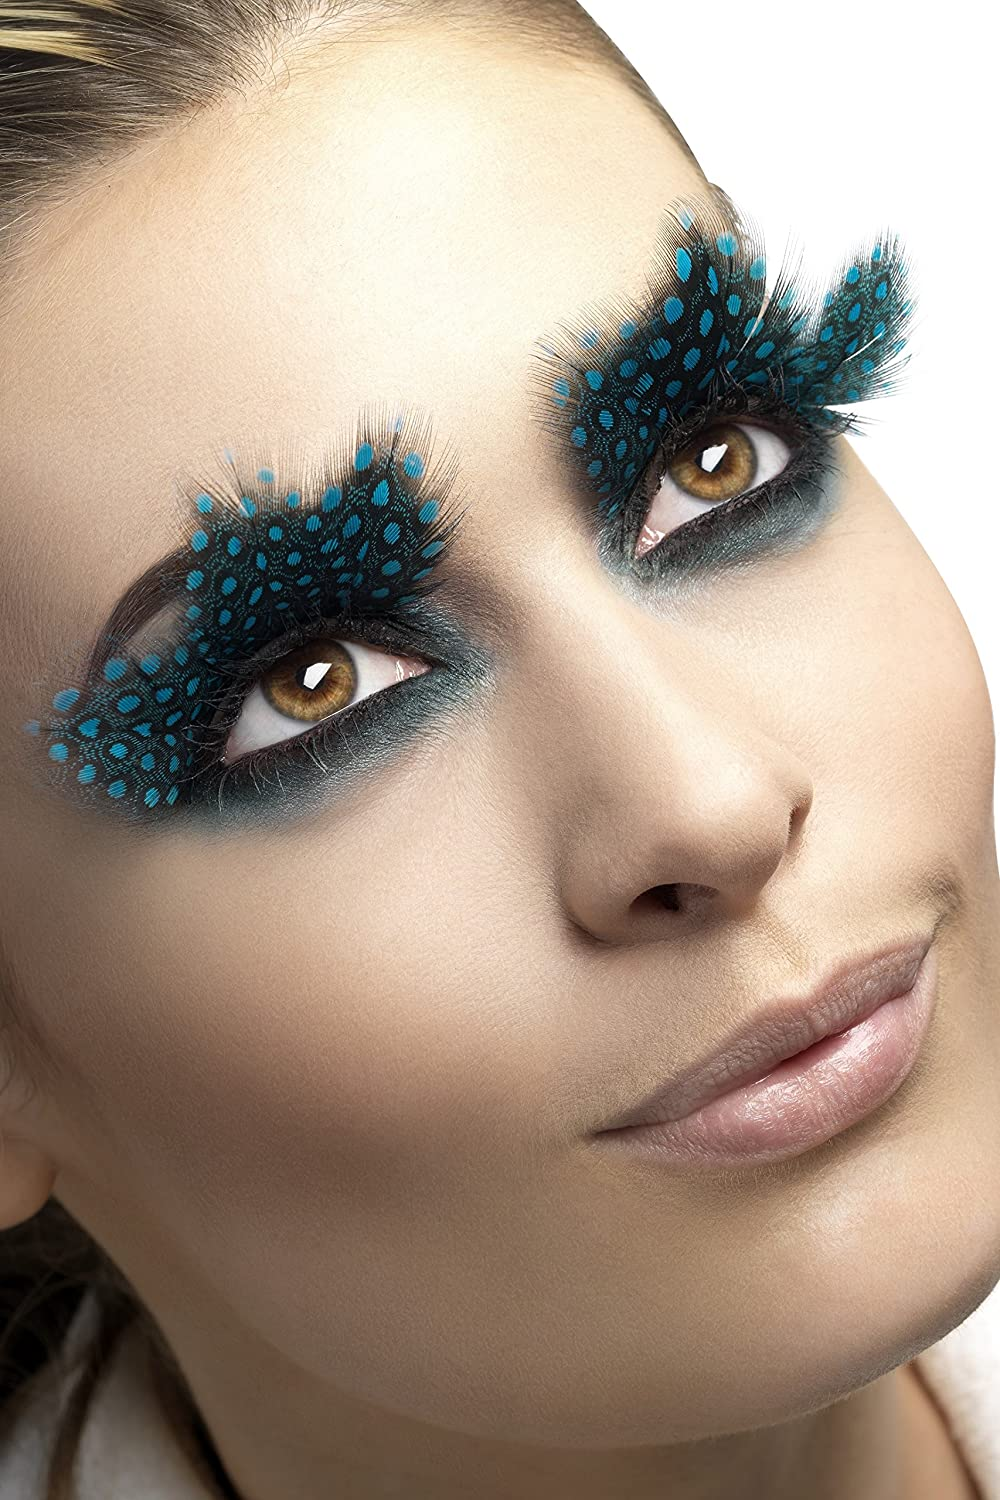 Fever Women's Eyelashes Large Feather with Dots Contains Glue In Display Box Multi One Size Fever Costumes 24234